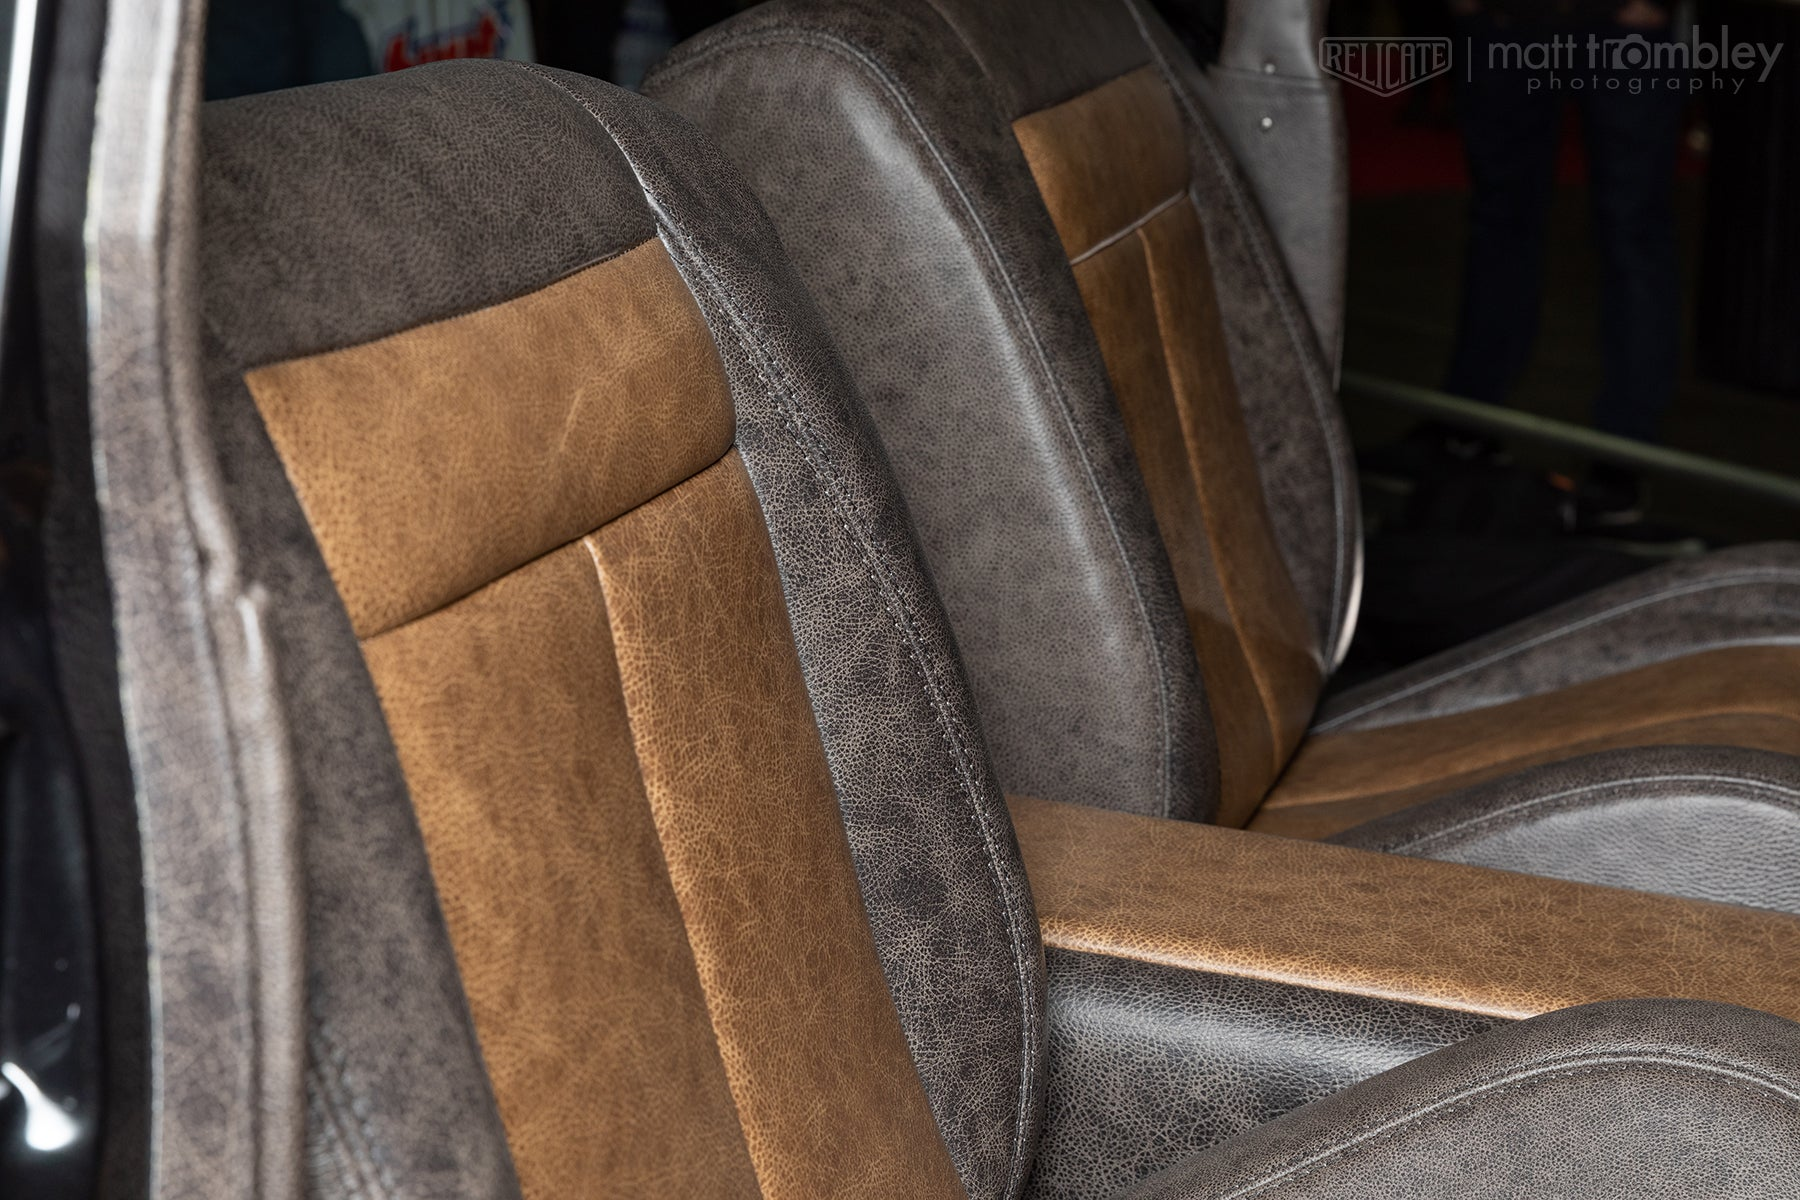 1960 Ford Country Squire Leather Interior Bucket Seats